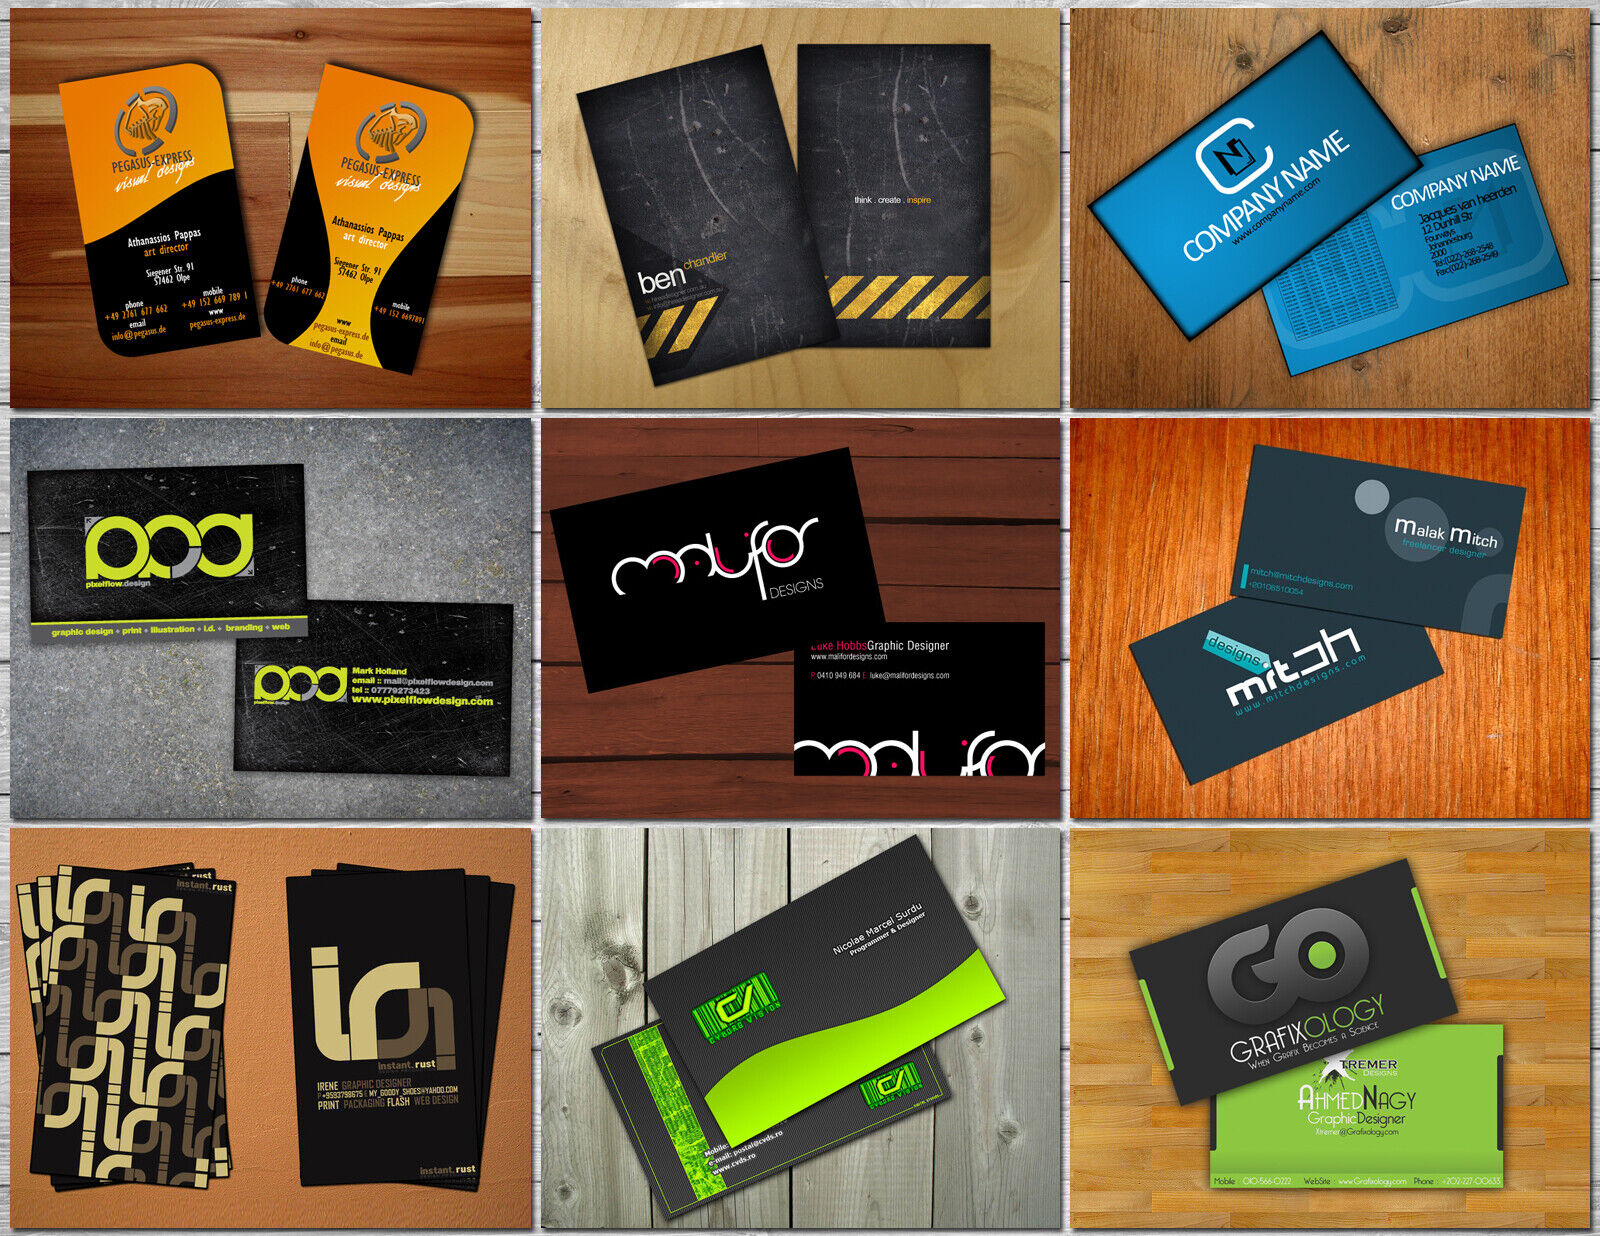 Business Card Designing Within 24 HOURS  - $7.98